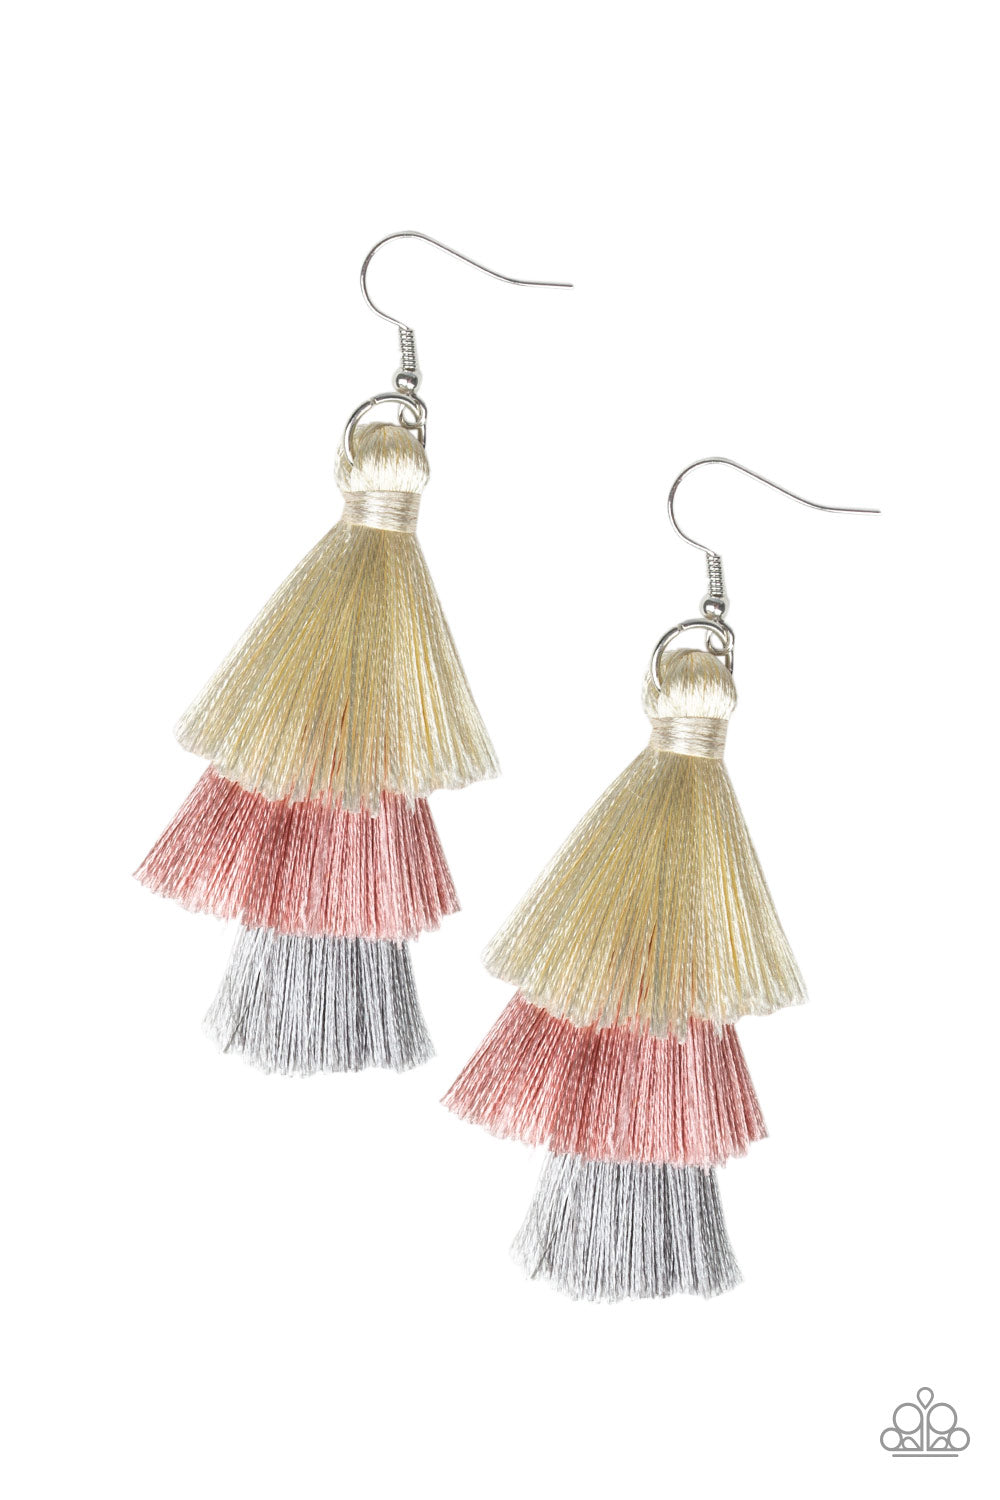 Hold on Your Tassel! - Pink Earrings - SavvyChicksJewelry